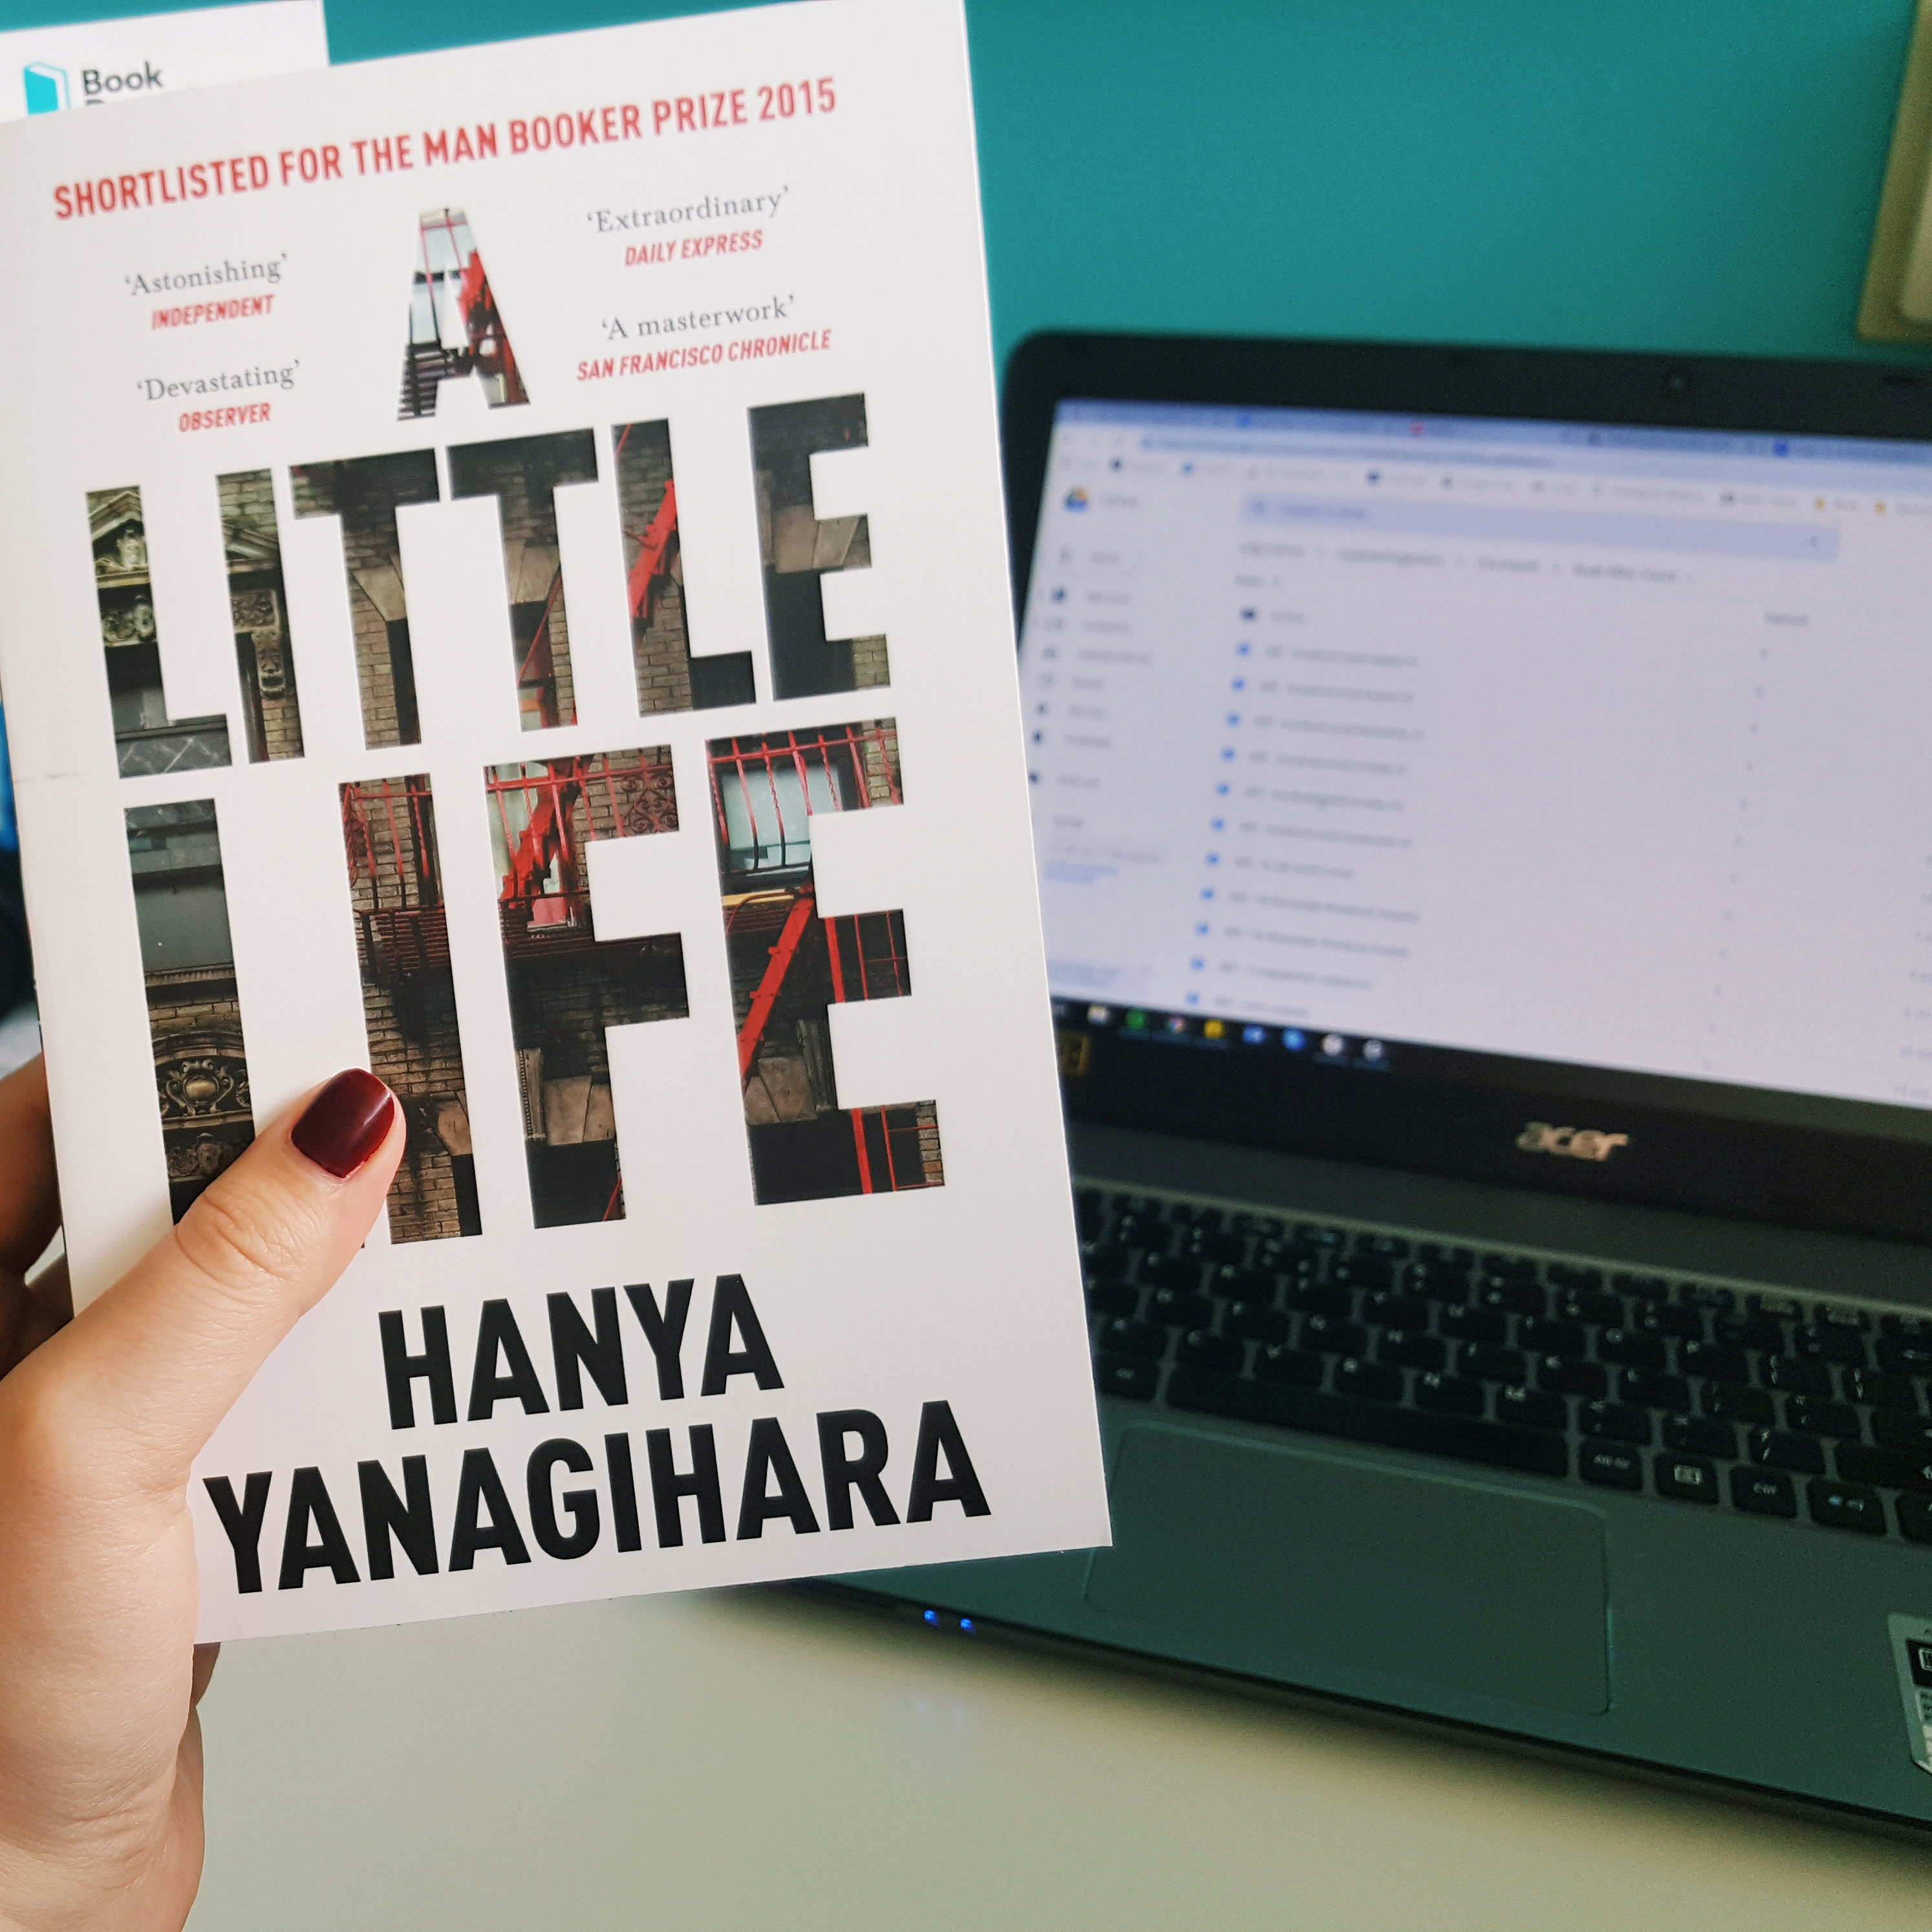 Read my review of 'A Little Life' by Hanya Yanagihara on theveryhungrybookworm.com!